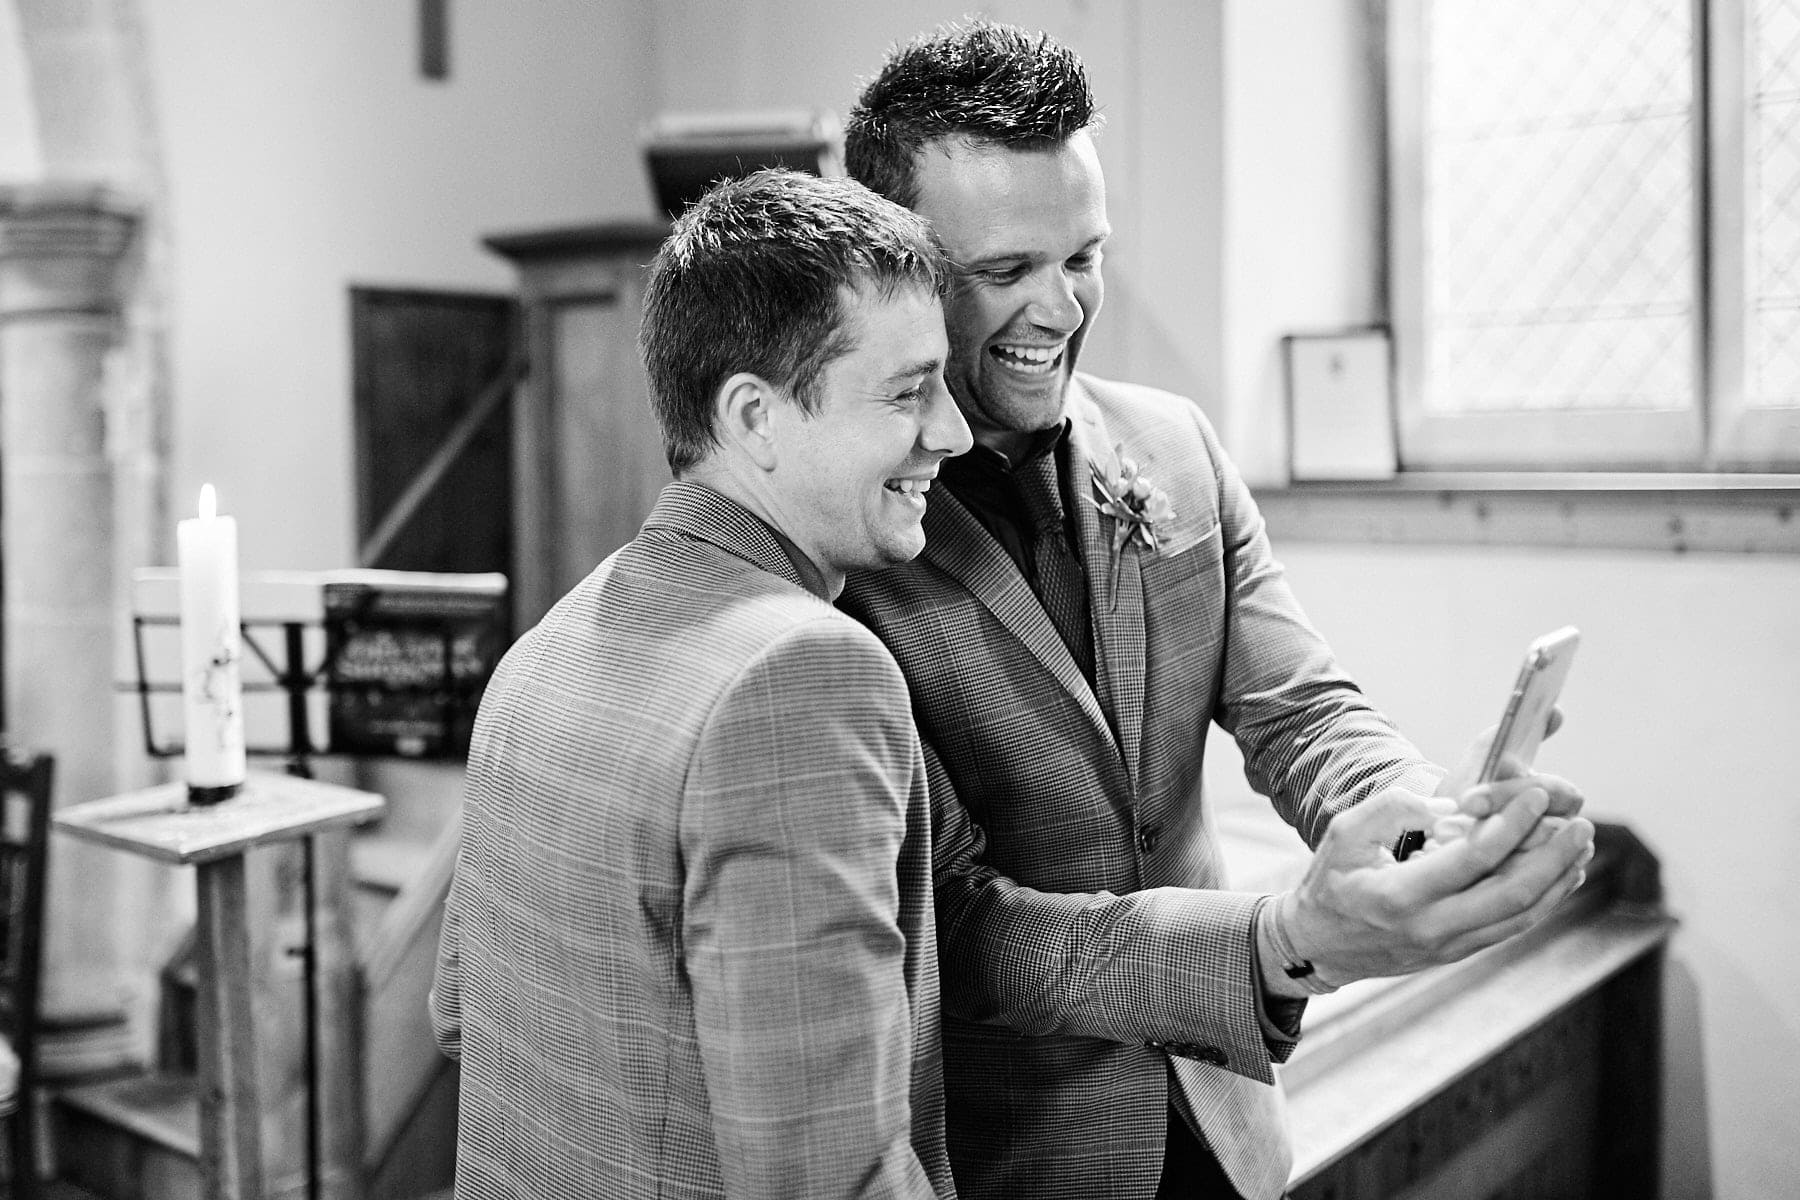 A groom and his best man pose for a selfie as they wait in church for the bride.